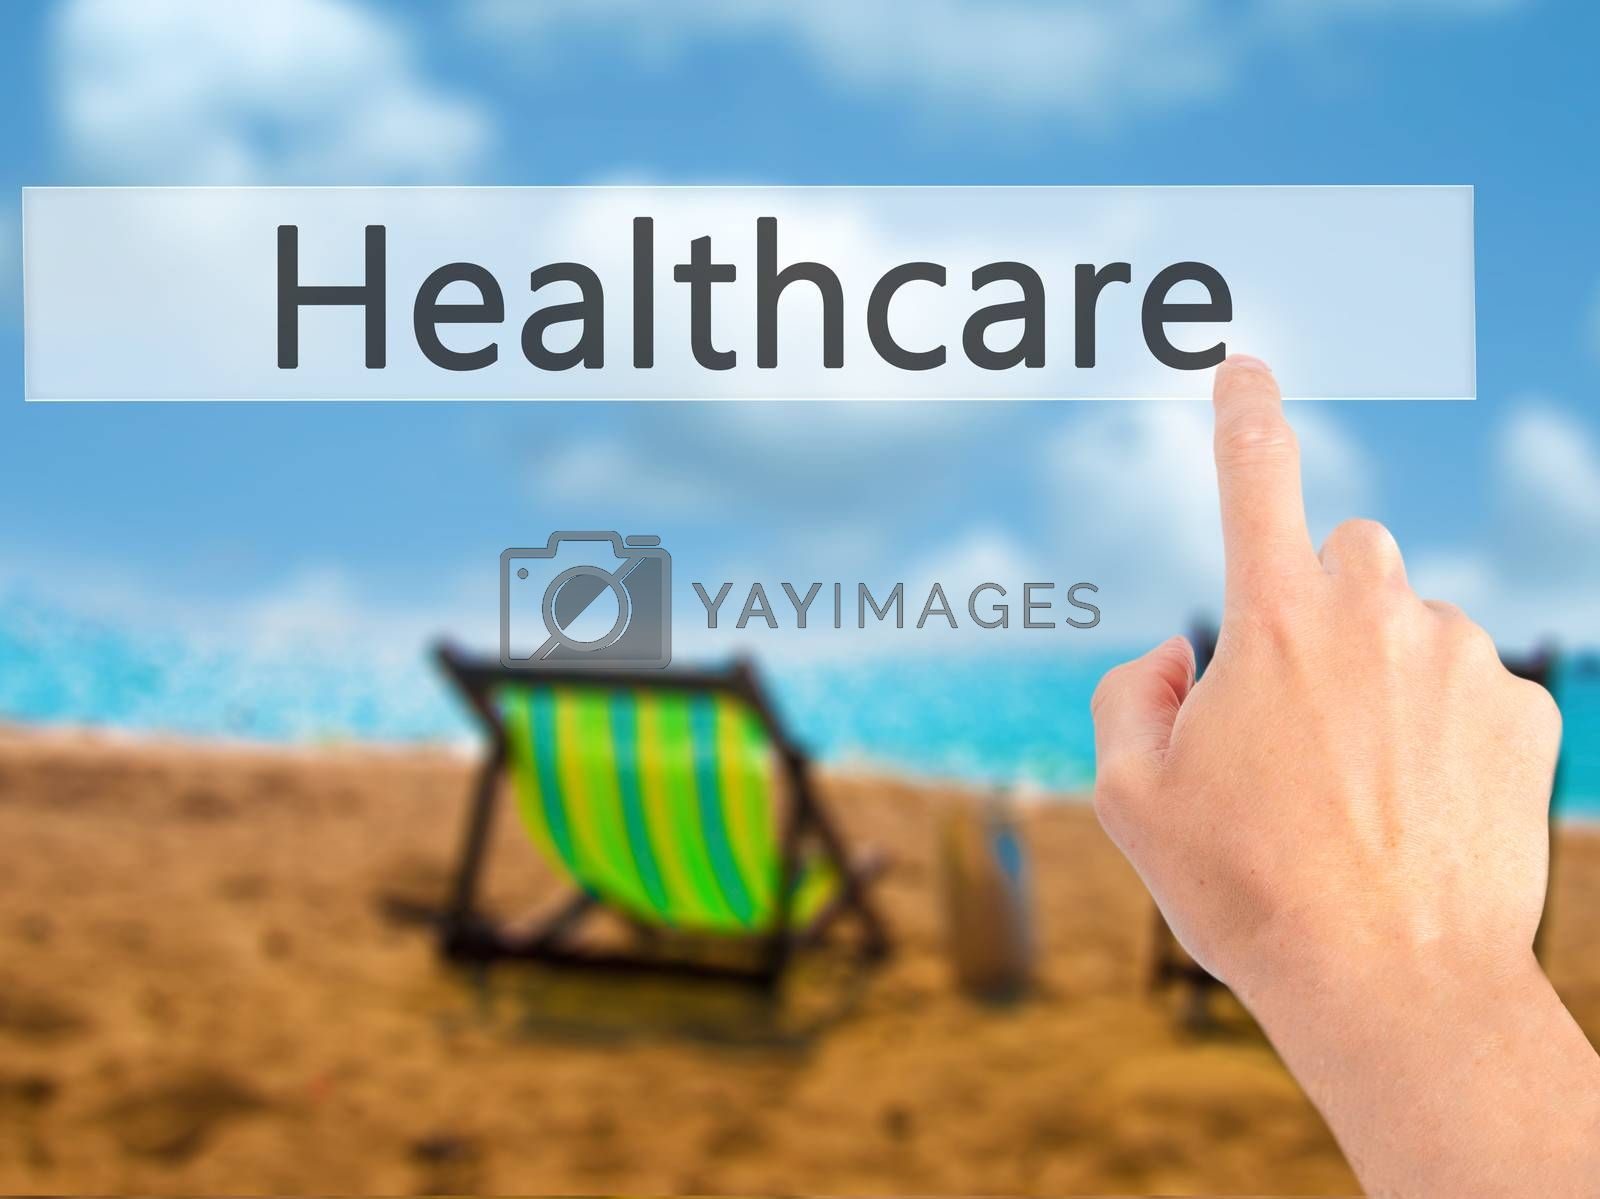 Healthcare - Hand pressing a button on blurred background concep by netsay.net